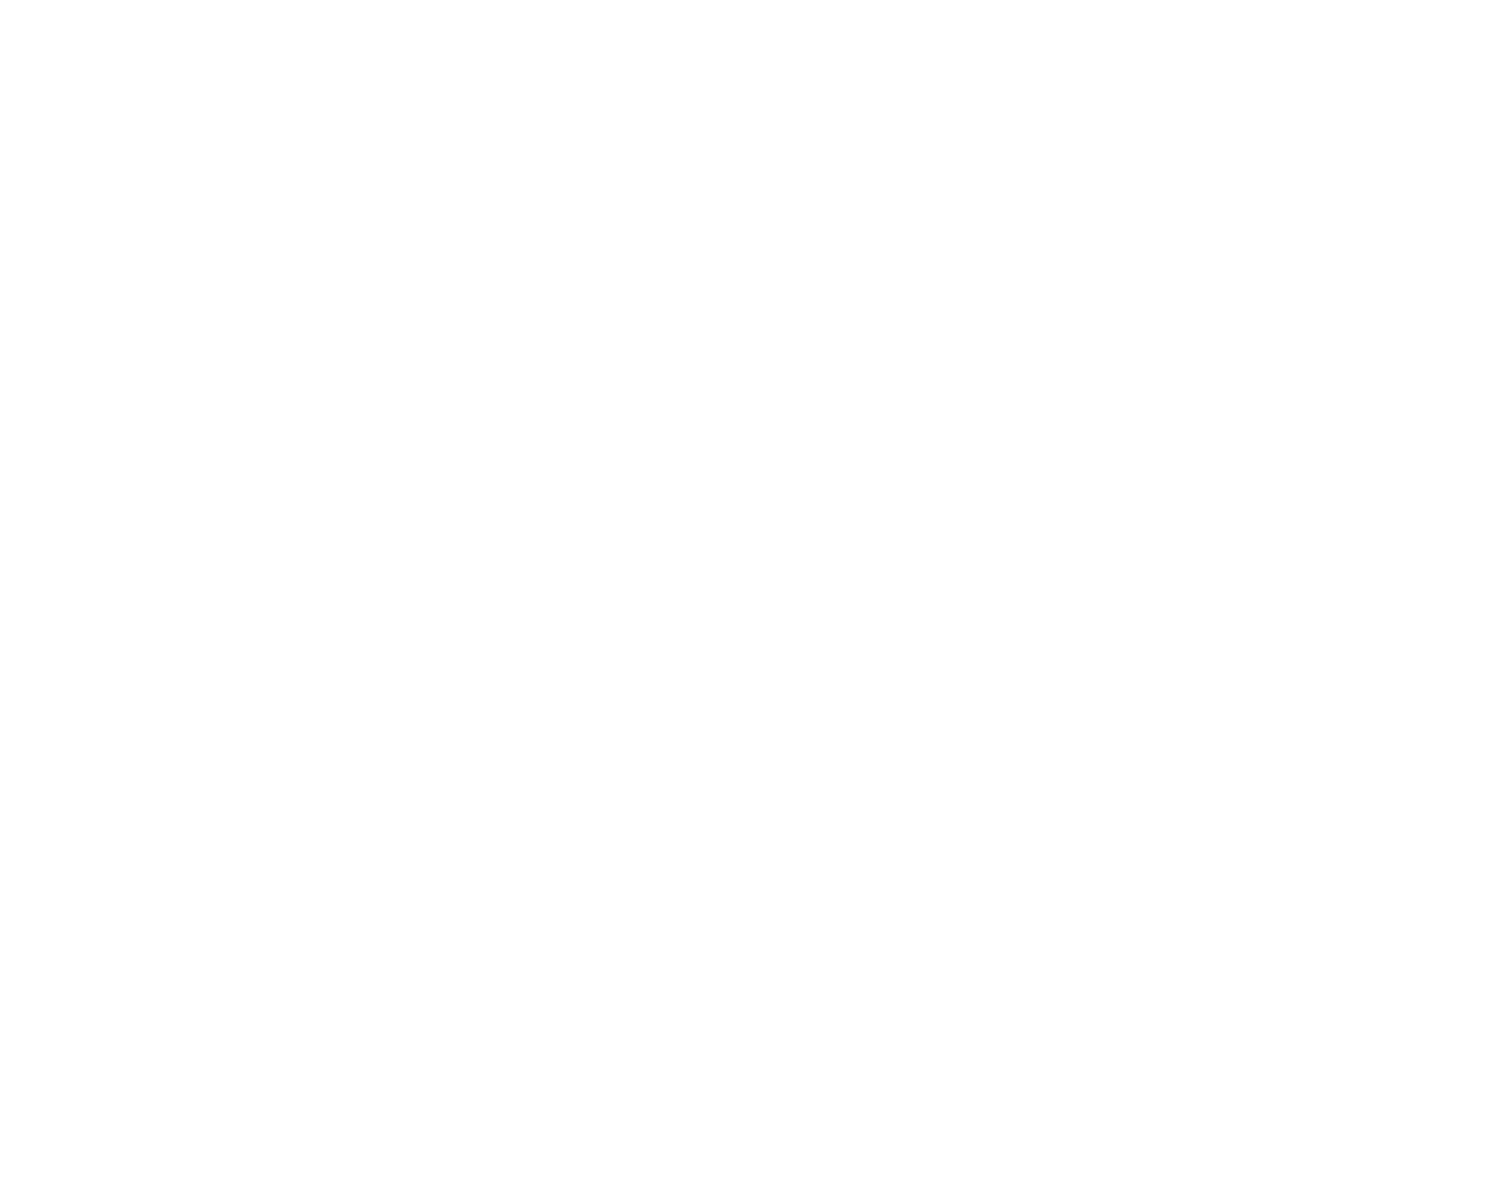 Motek Diamonds by IDC: Diamond Importers & Engagement Ring Designers - Dallas, TX